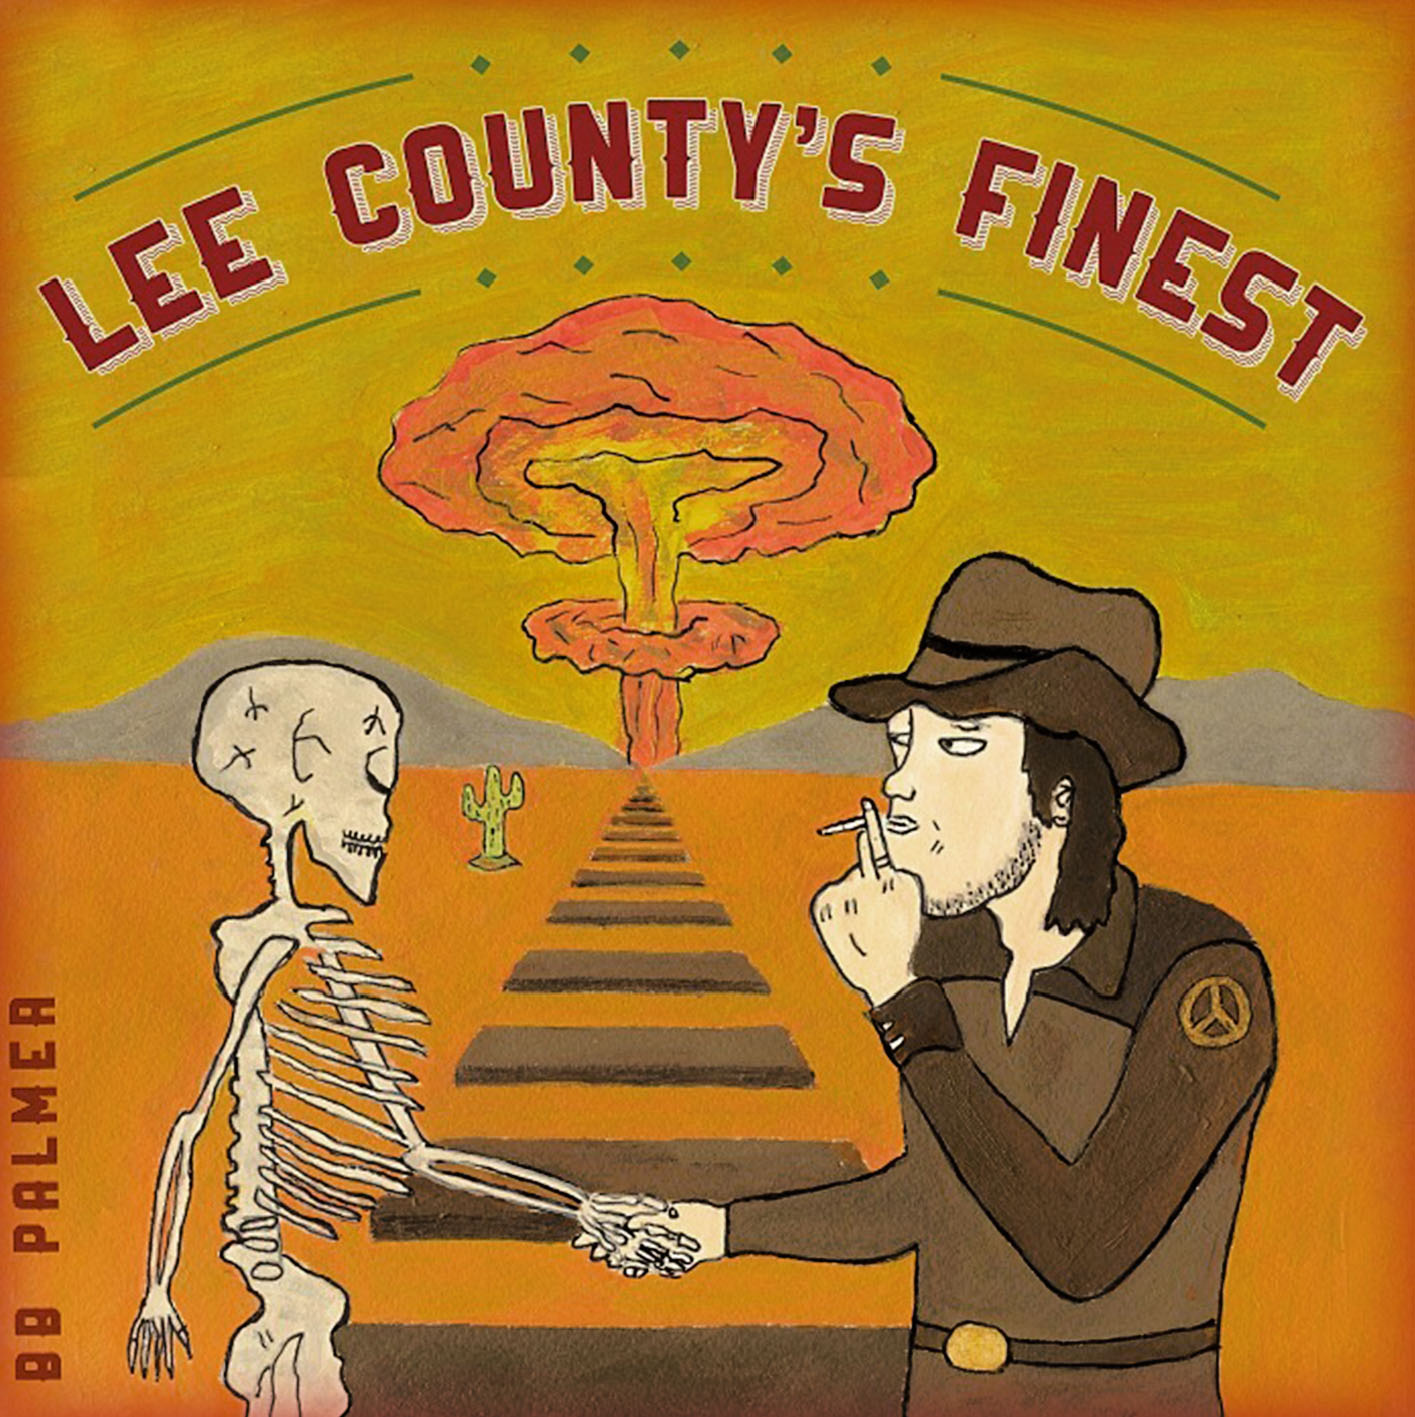 BB Palmer - Lee County's Finest Album Cover.jpg